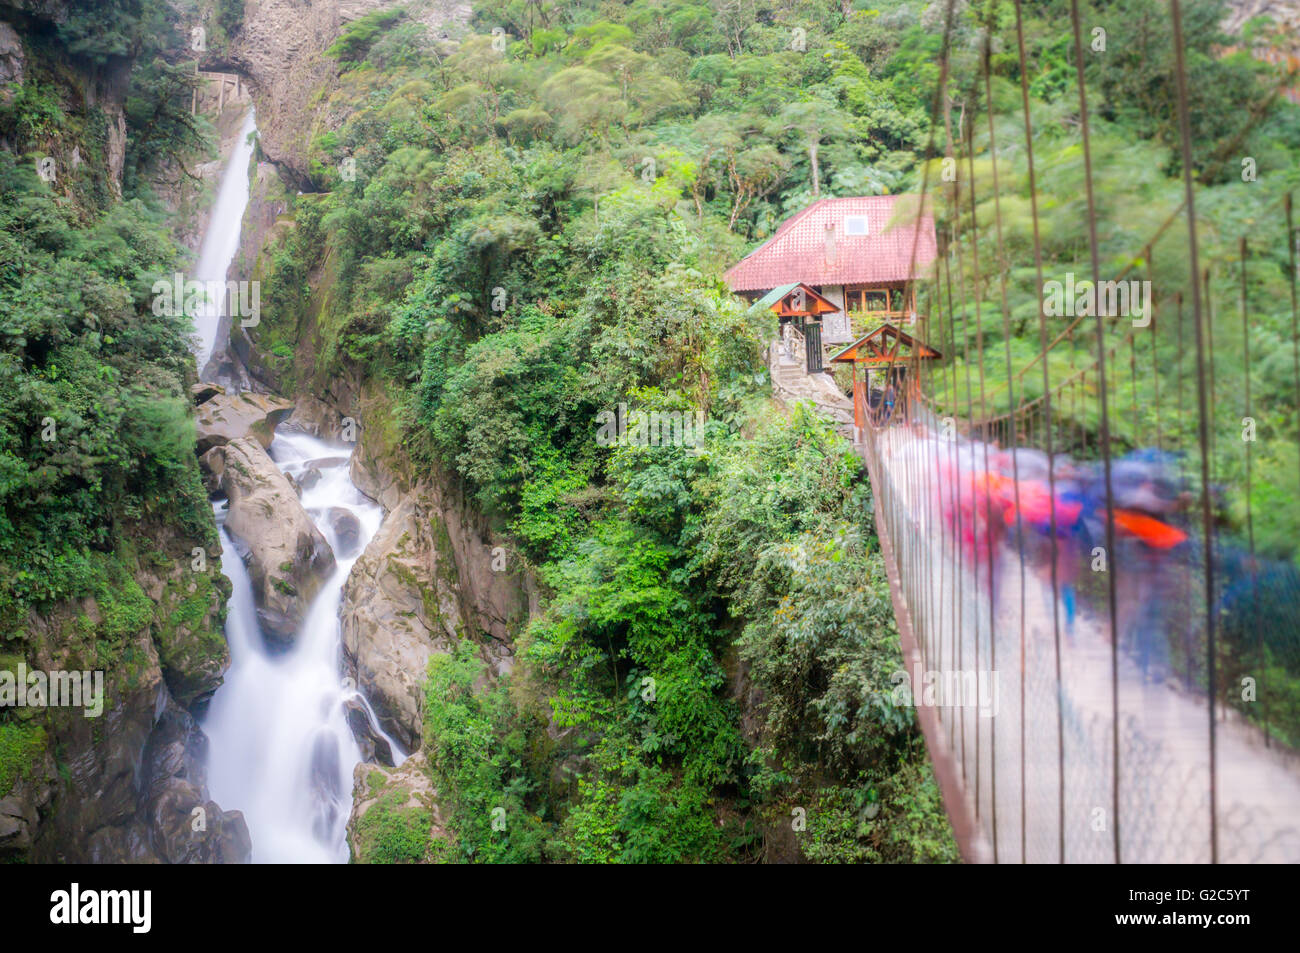 Pailon del Diablo waterfall in Banos, Ecuador - Stock Image